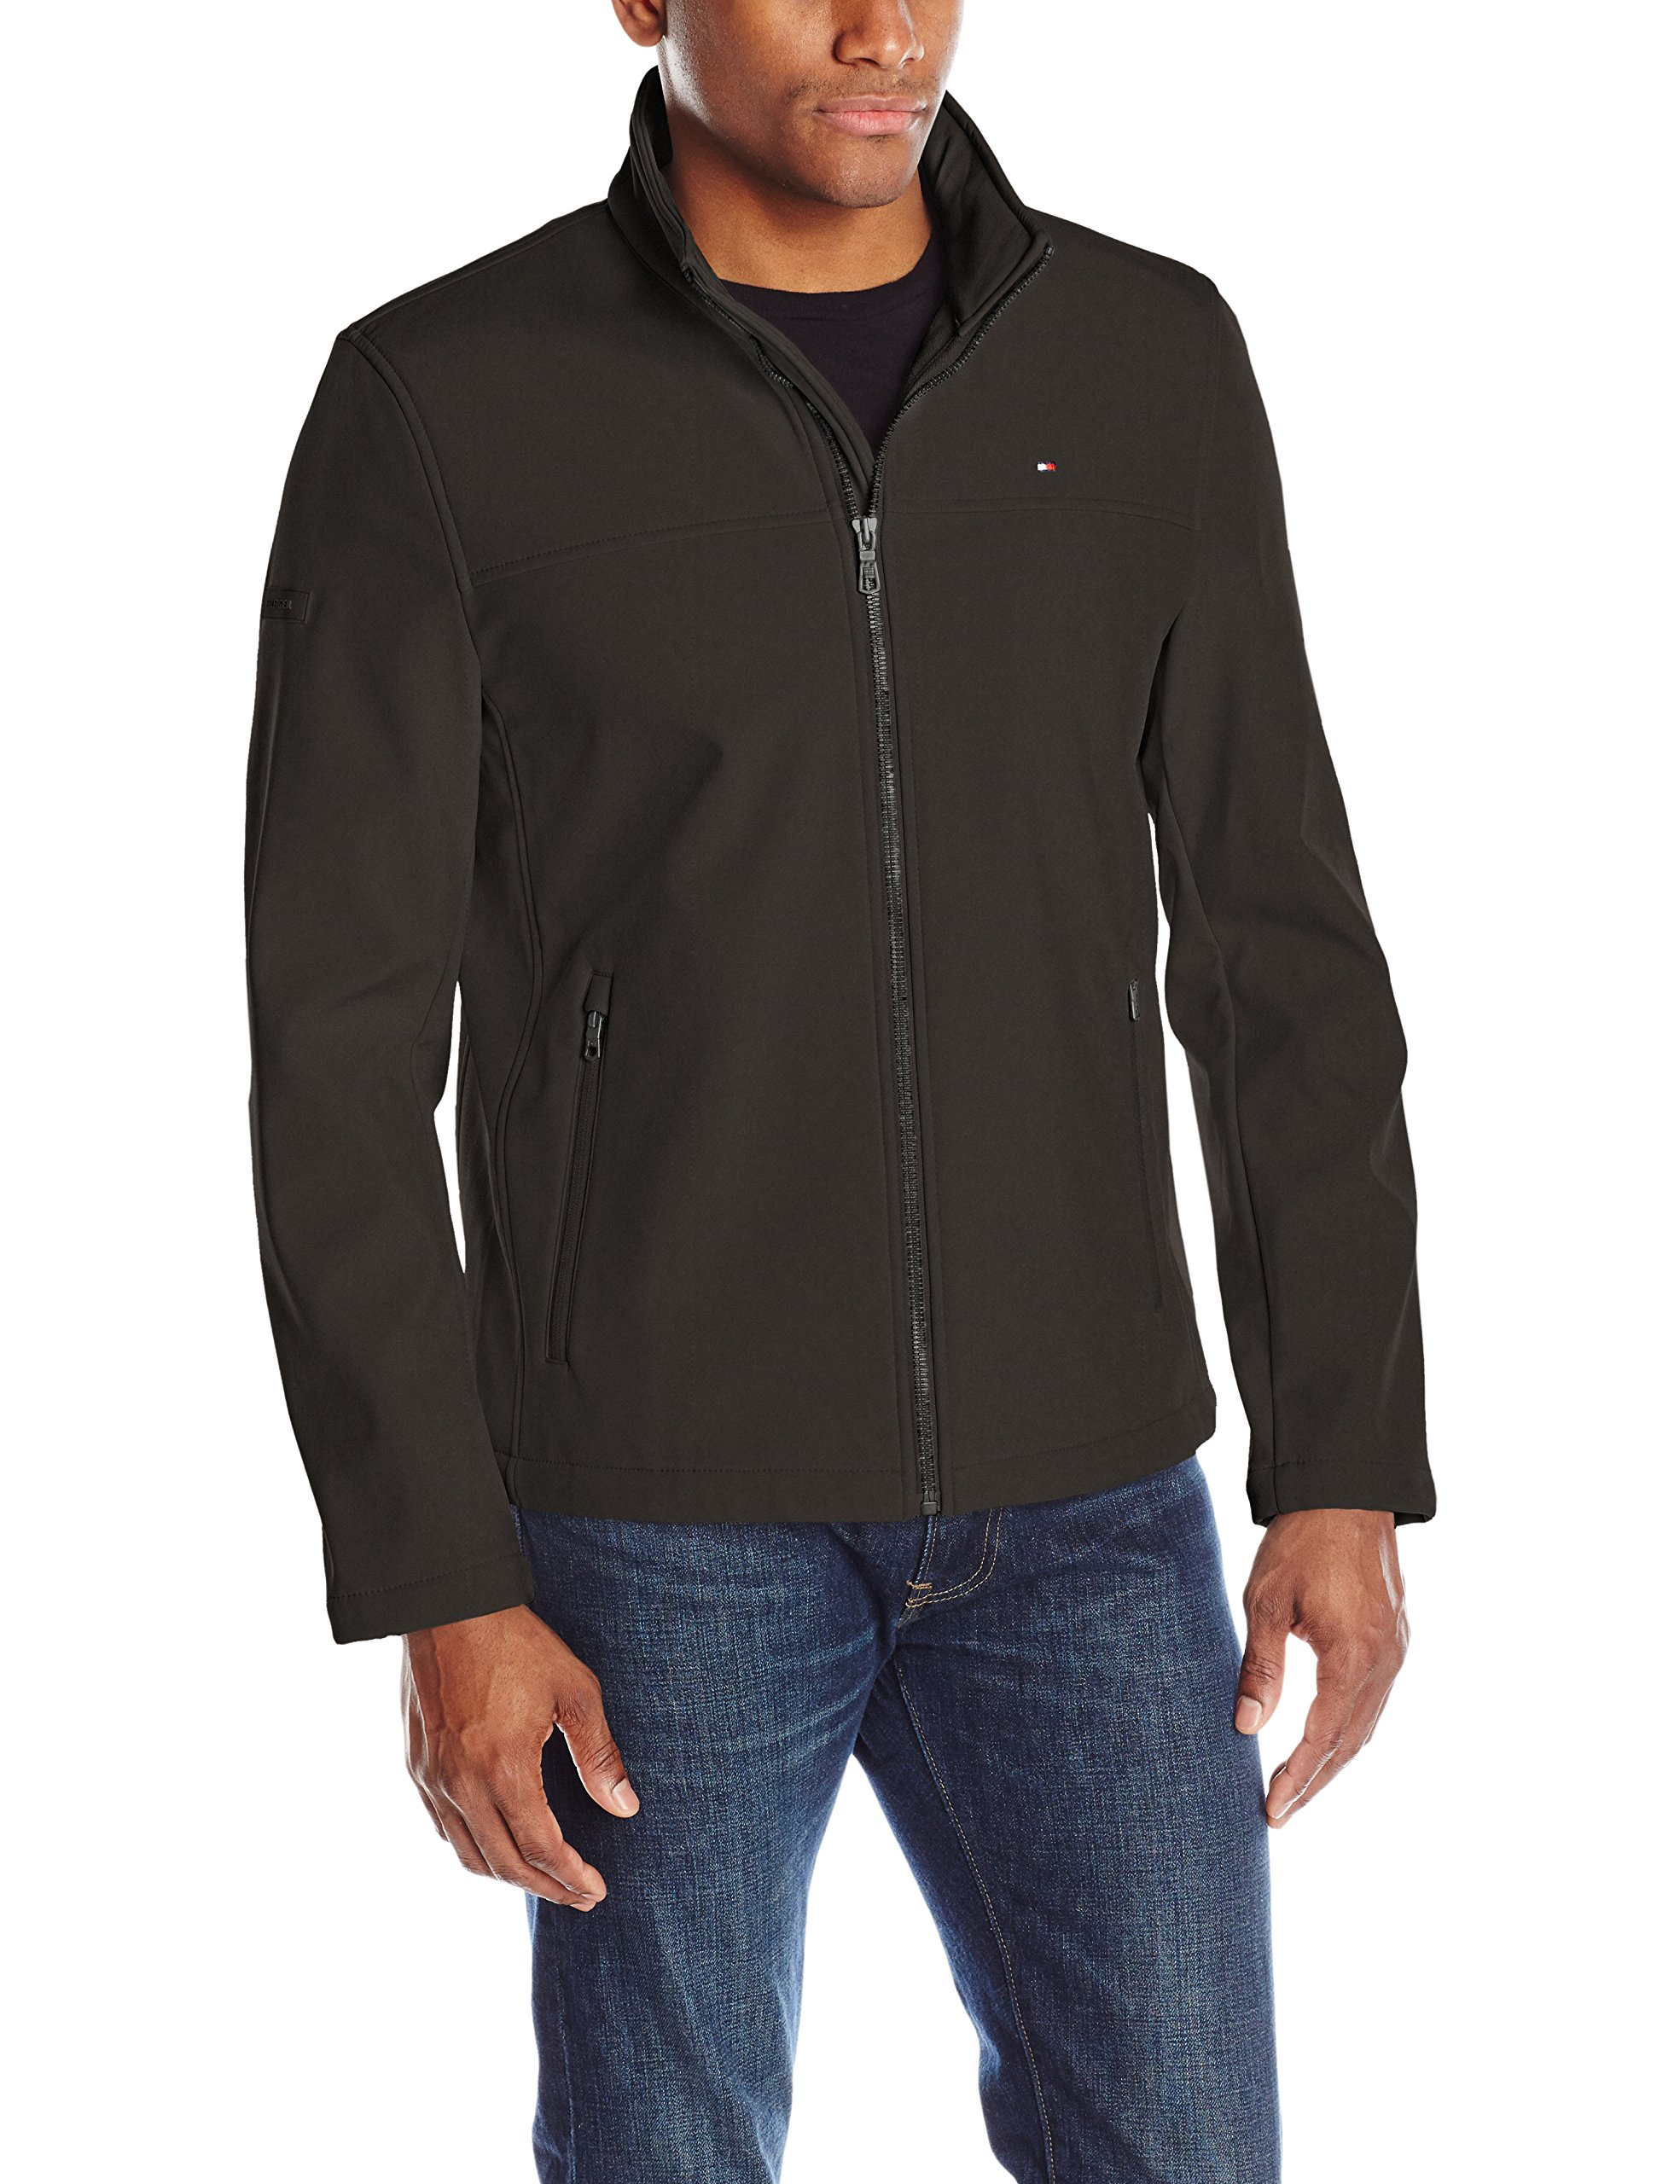 Tommy Hilfiger Men's Classic Soft Shell Jacket, Black, XX-Large by Tommy Hilfiger